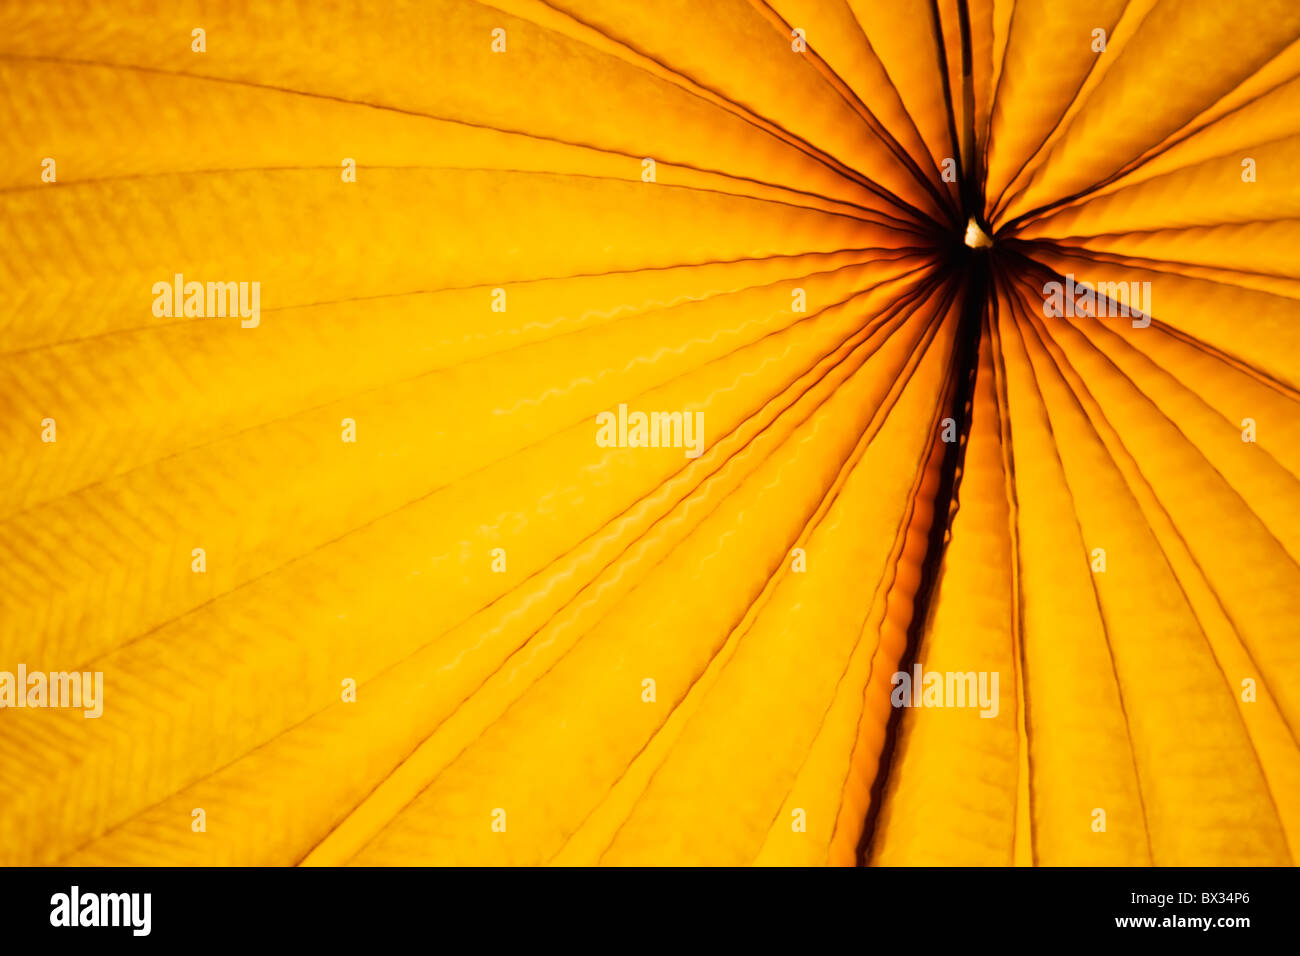 Chinese paper lantern in illuminating orange light at night - Stock Image